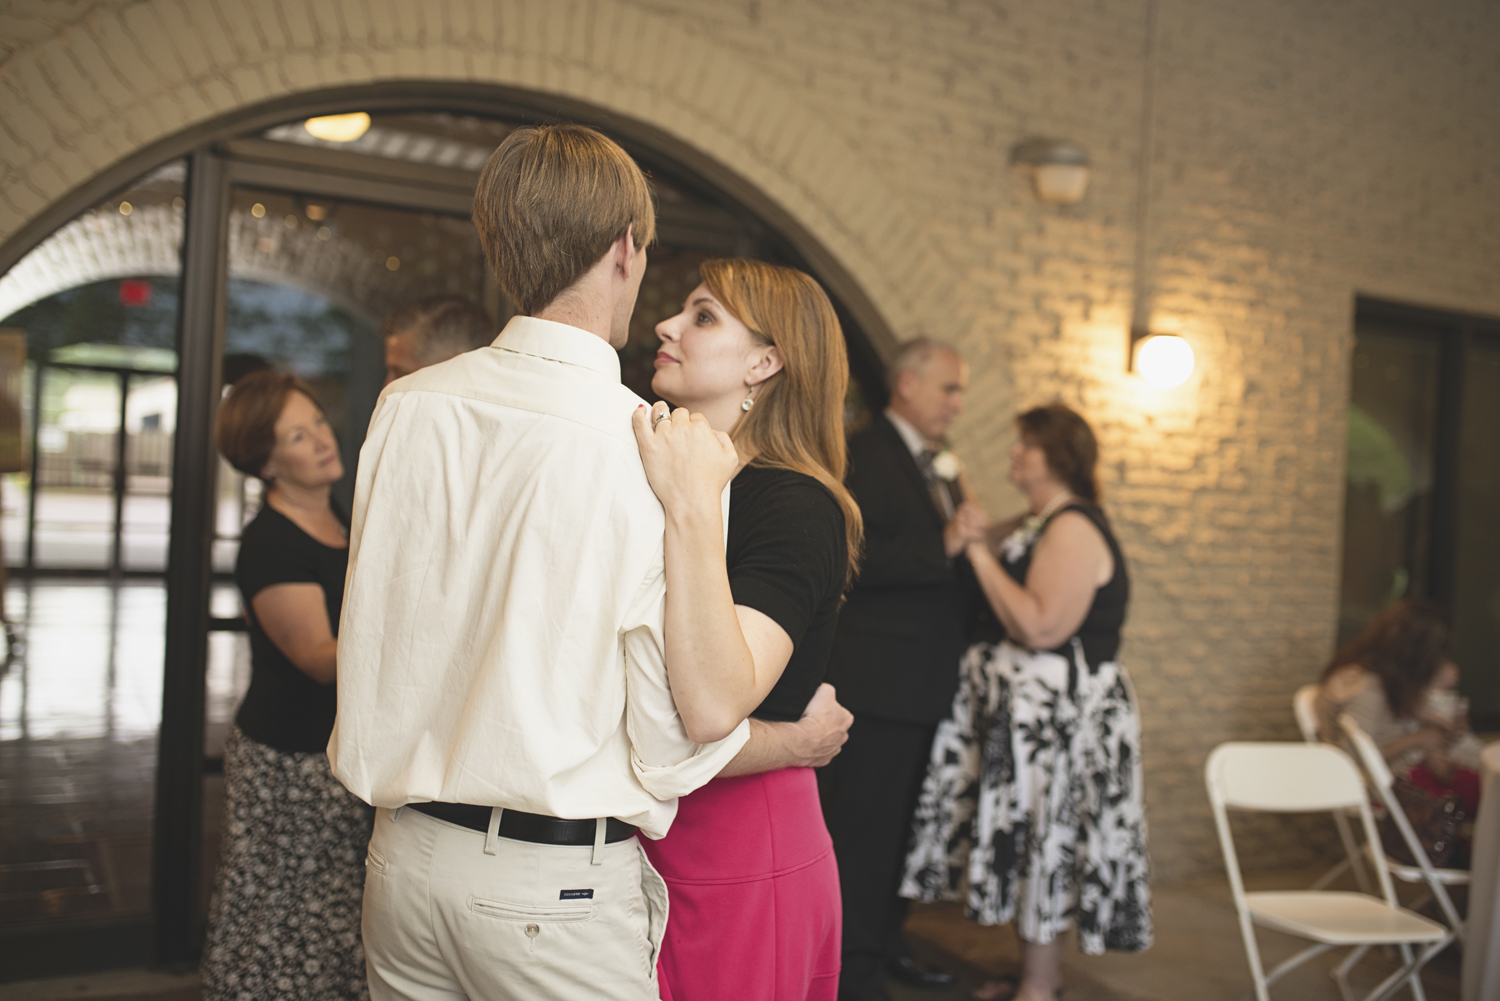 Mariners Museum Wedding | Newport News, Virginia |  Wedding reception guests dancing